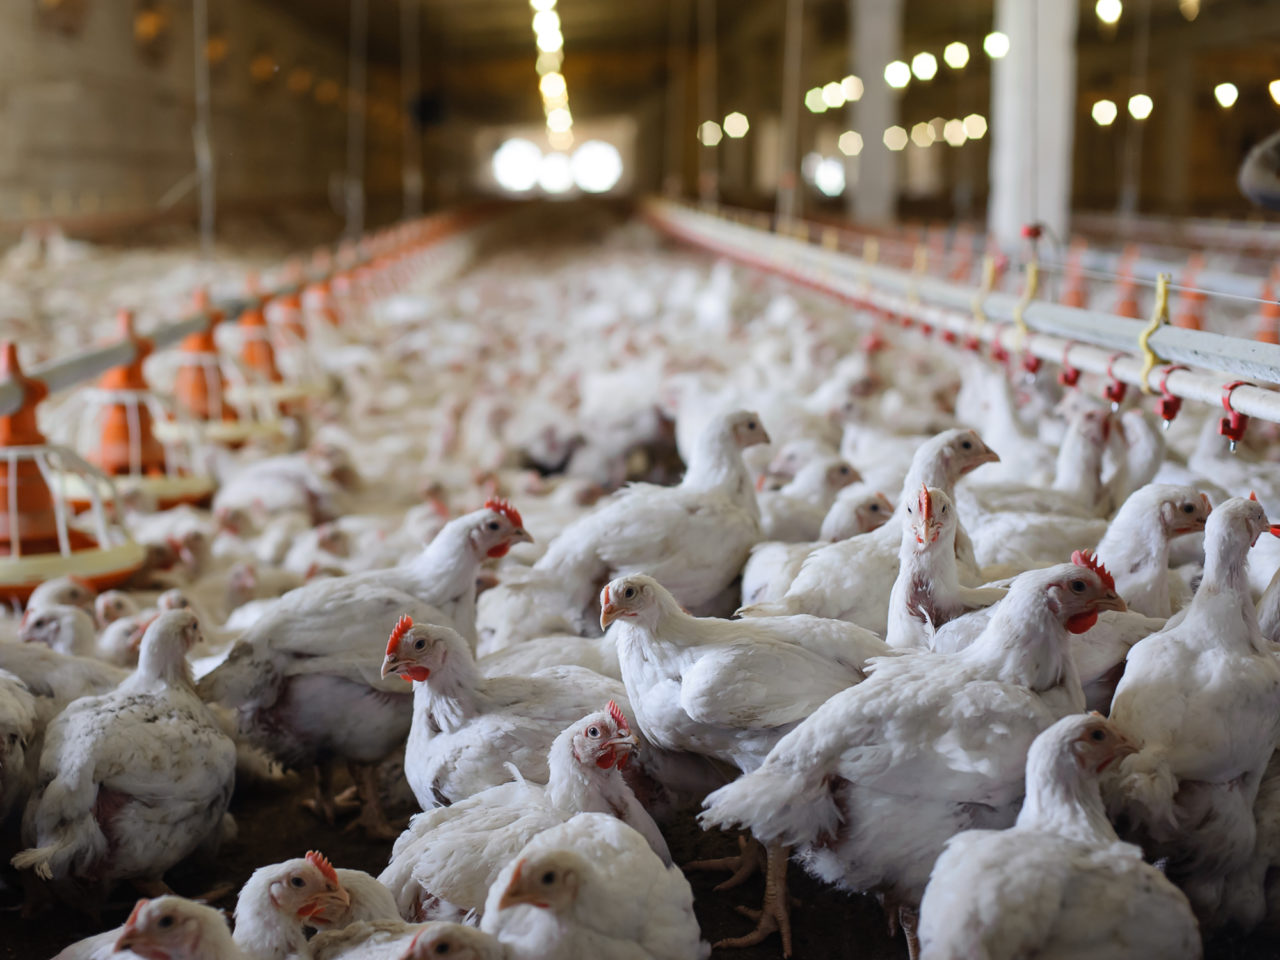 An image of factory farmed chickens